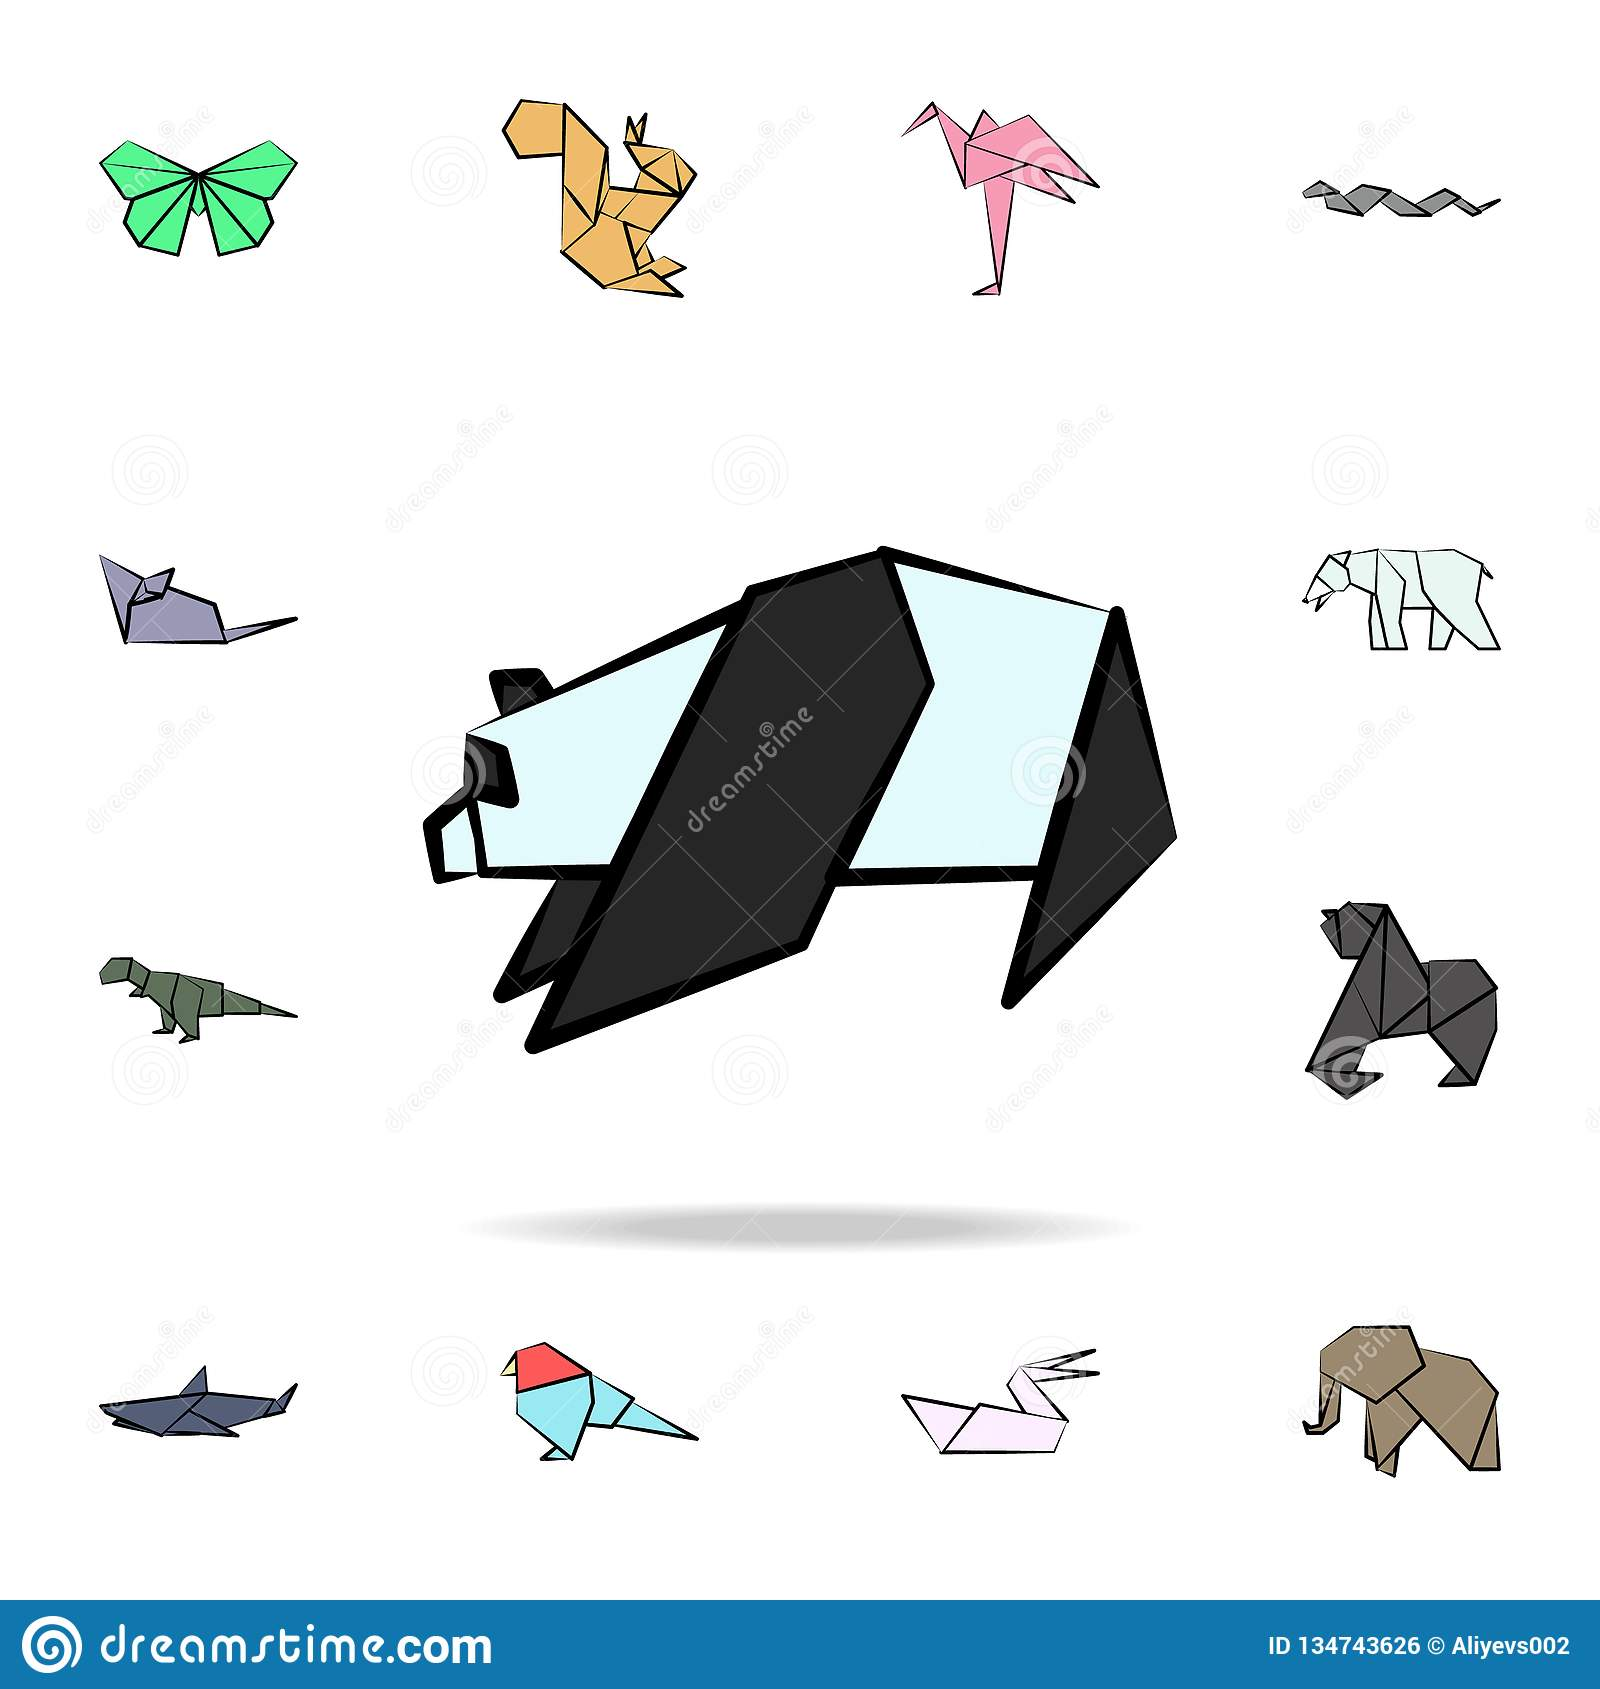 panda colored origami icon. Detailed set of origami animal in hand drawn style icons. Premium graphic design. One of the